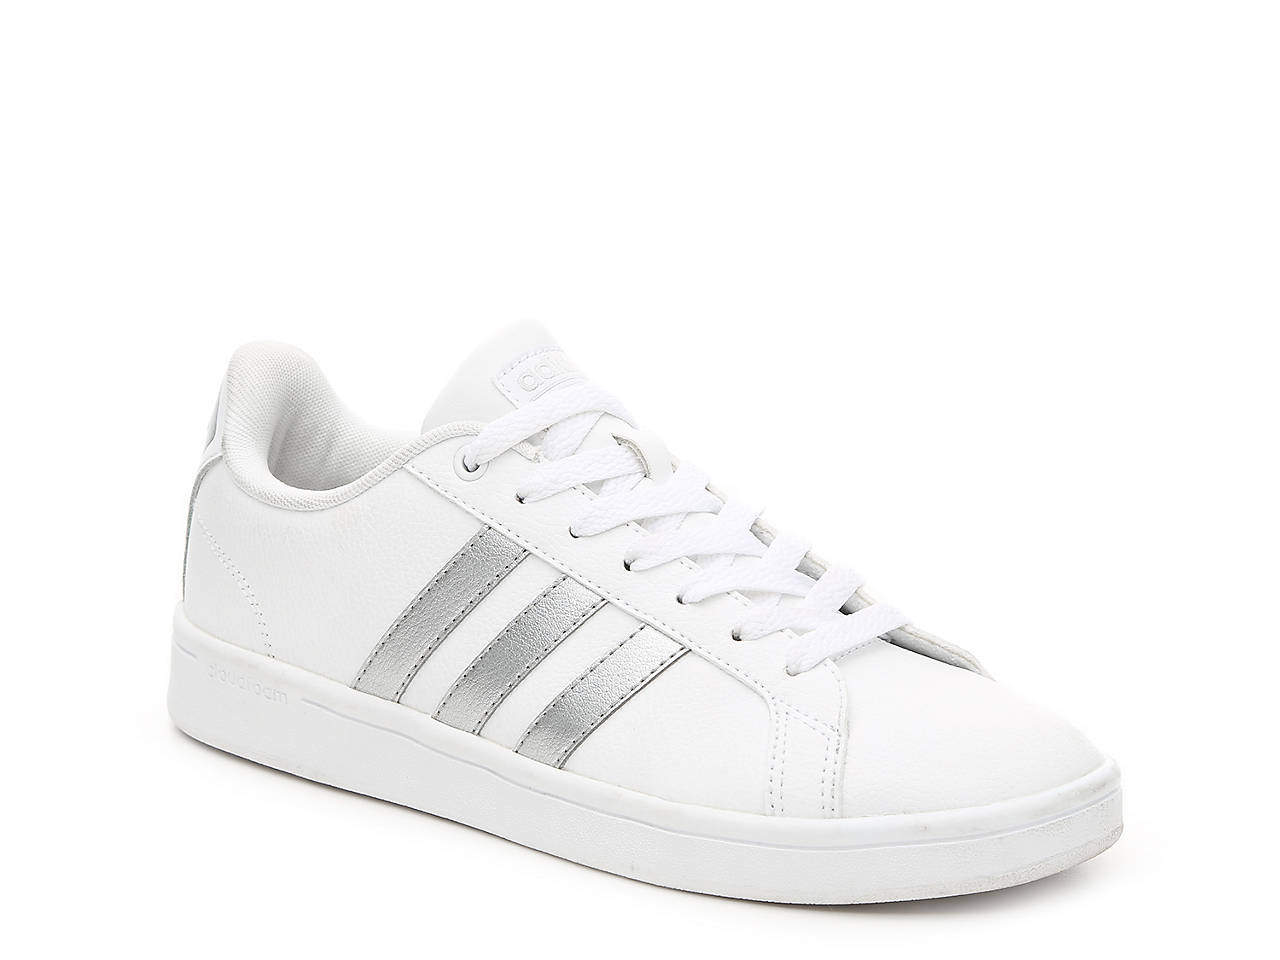 fd666d3ecde80 adidas Advantage Sneaker - Women s Women s Shoes